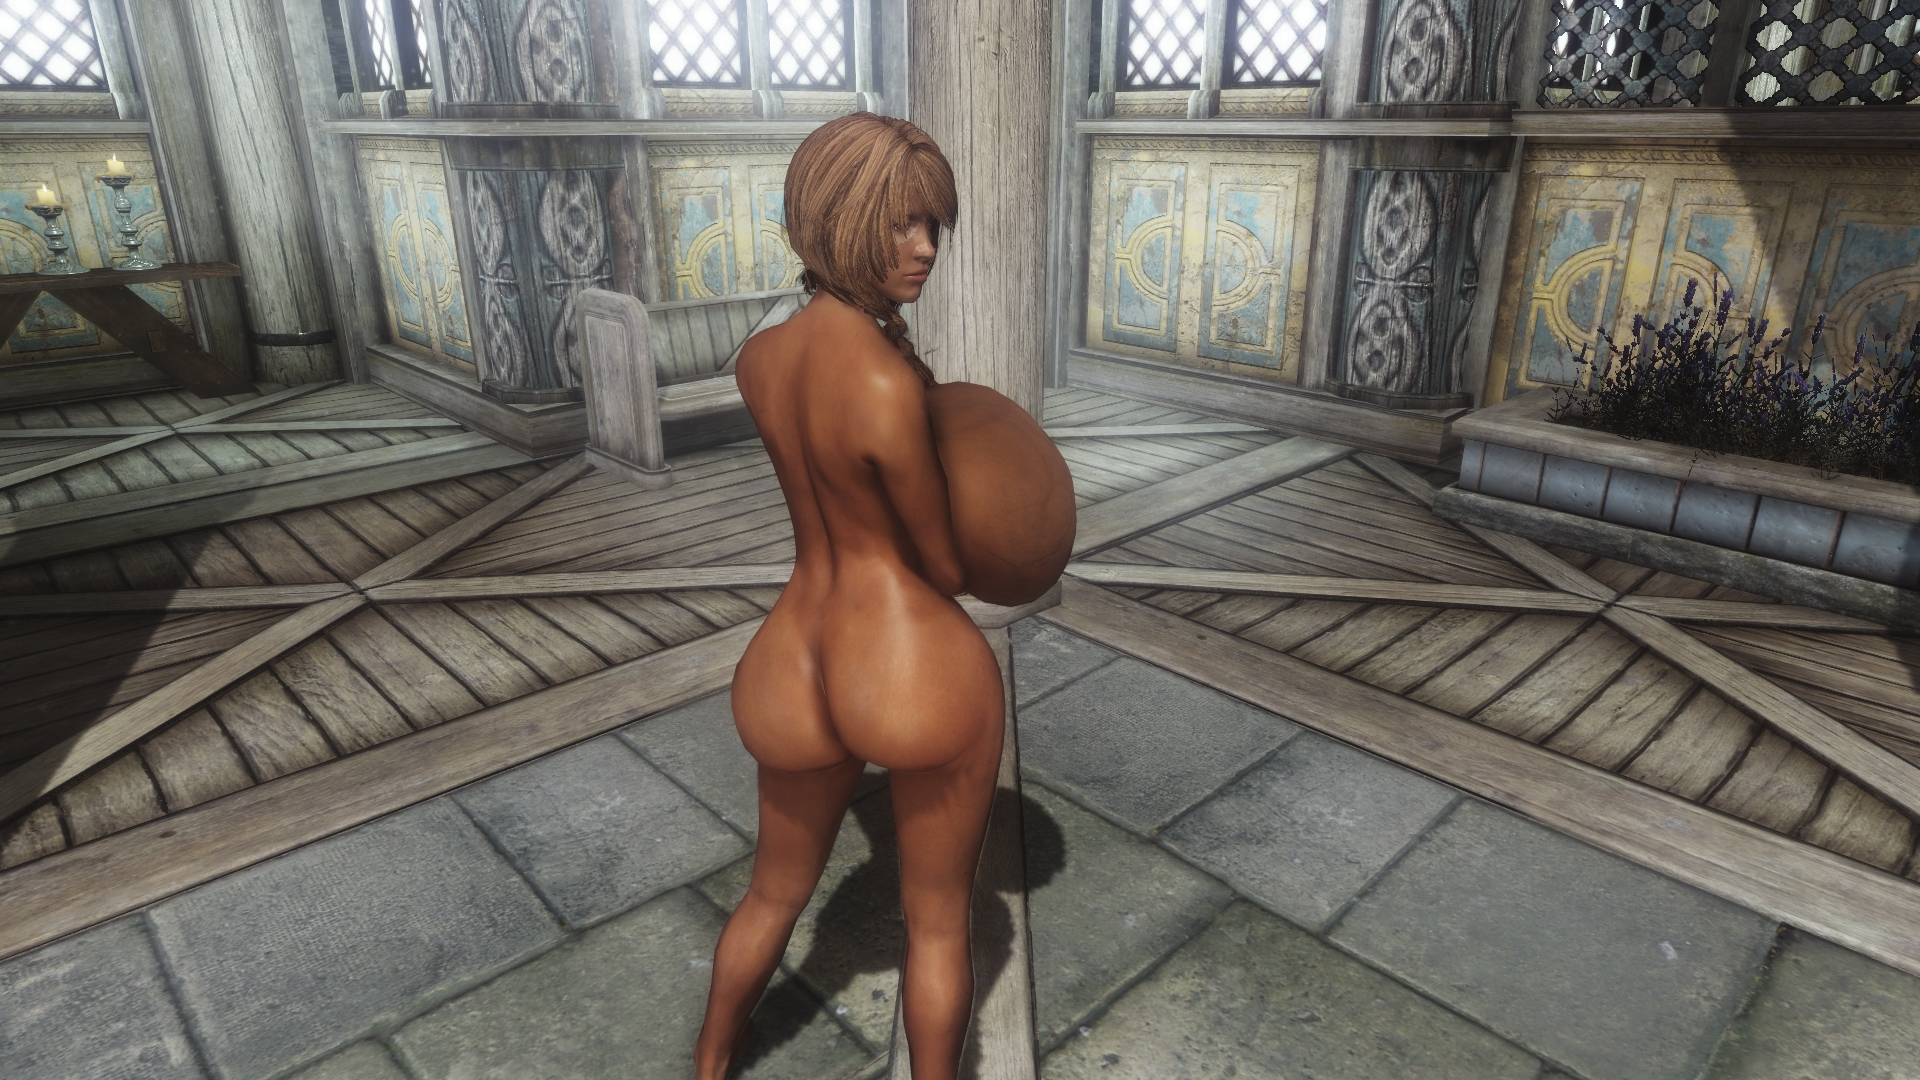 Elder scrolls shemale porn sex pictures